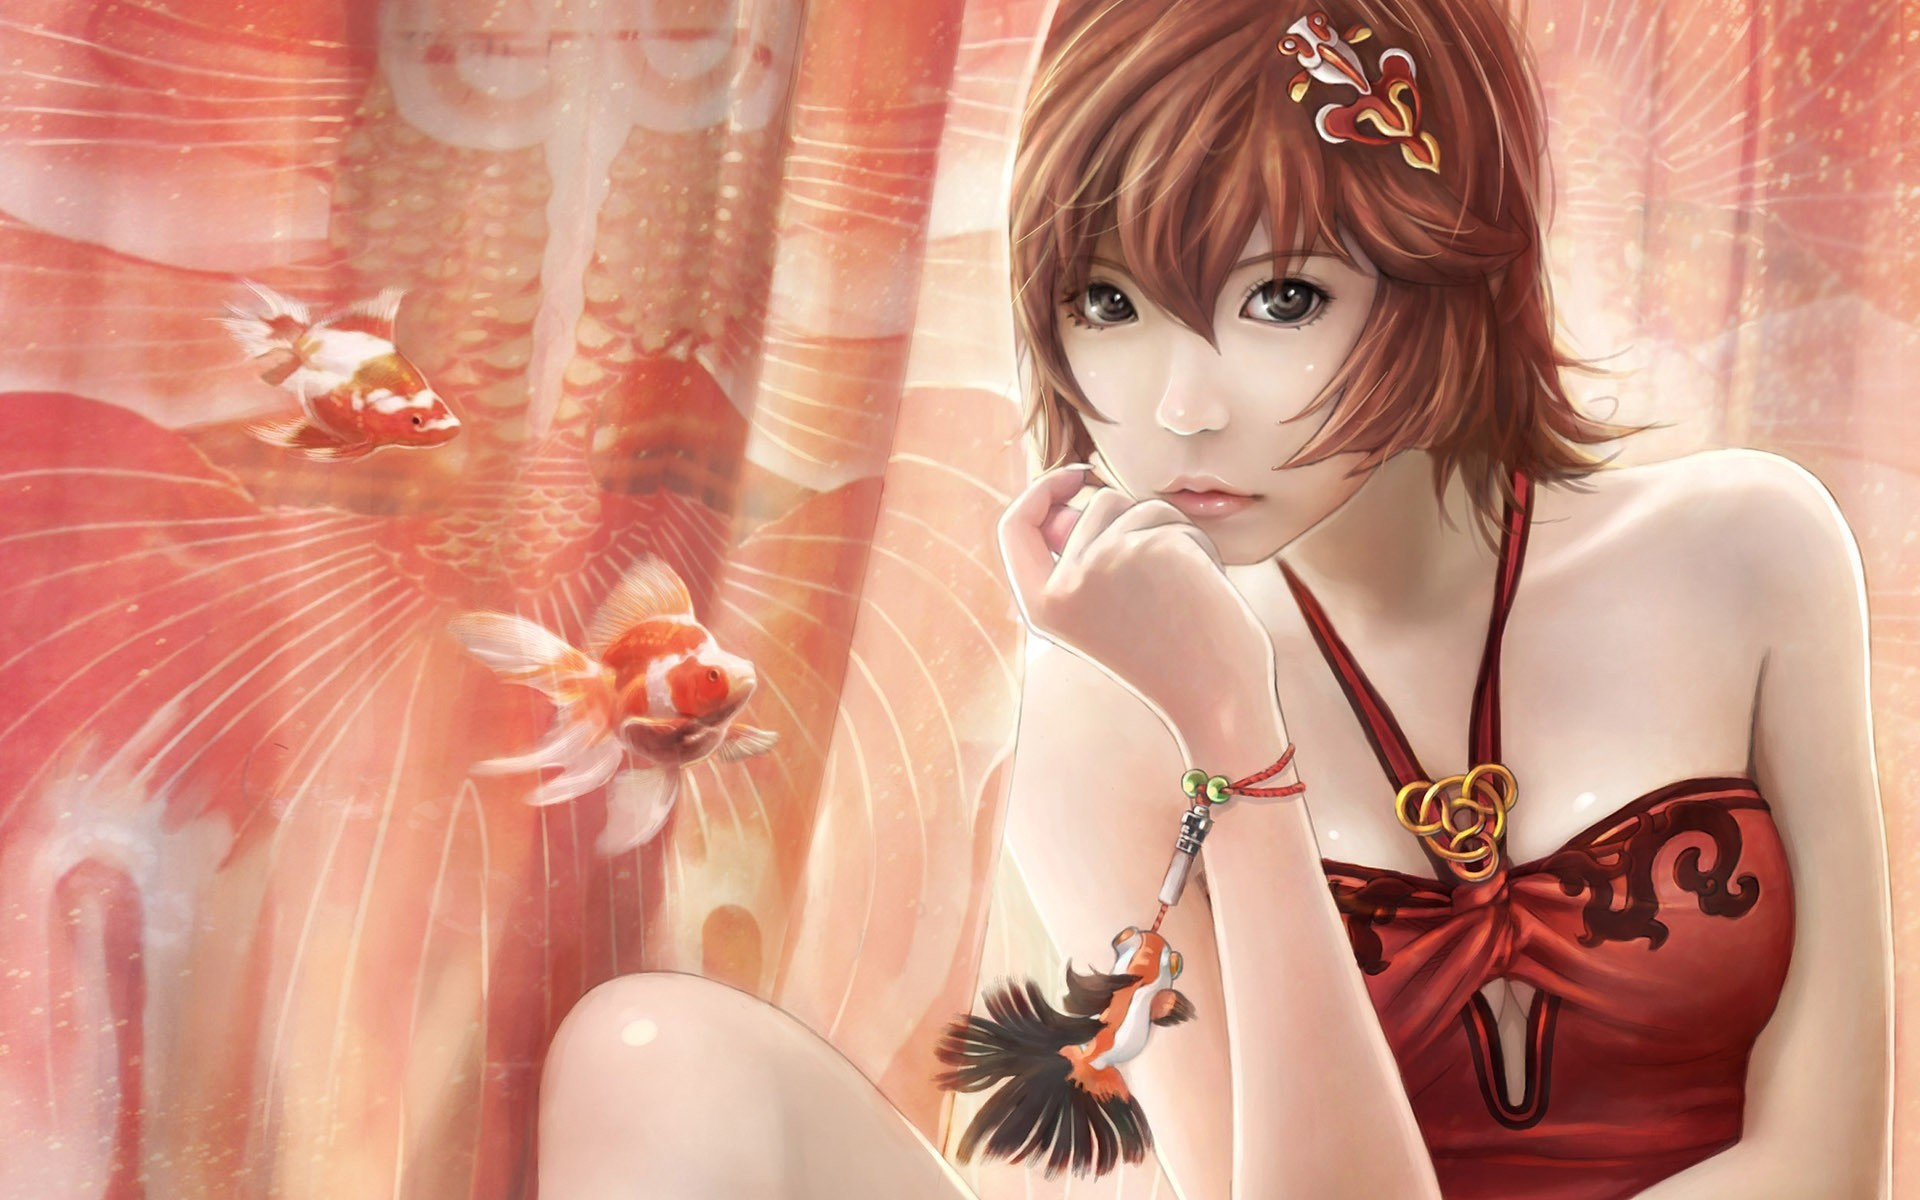 woman cgi asians artwork HD Wallpaper